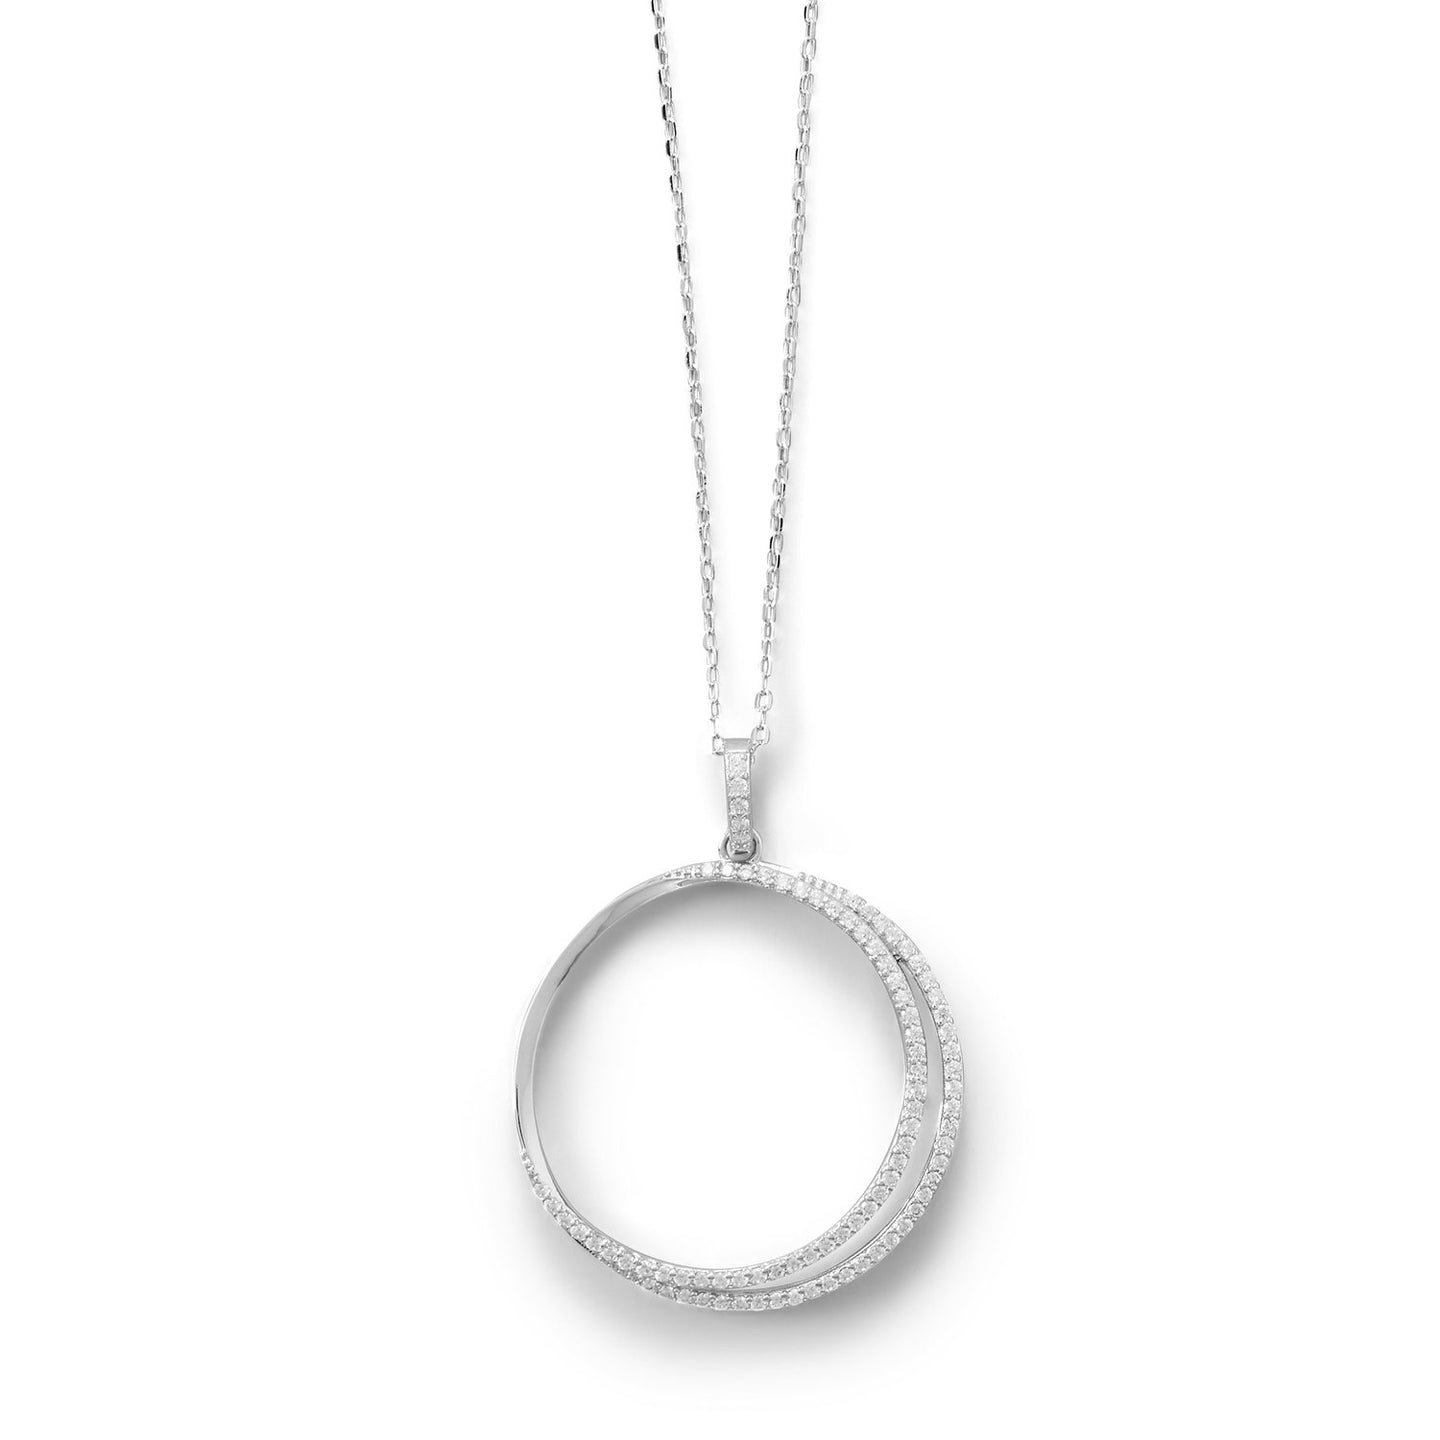 Eclipse Rhodium Plated CZ Necklace at 3 Barn Swallows, $62